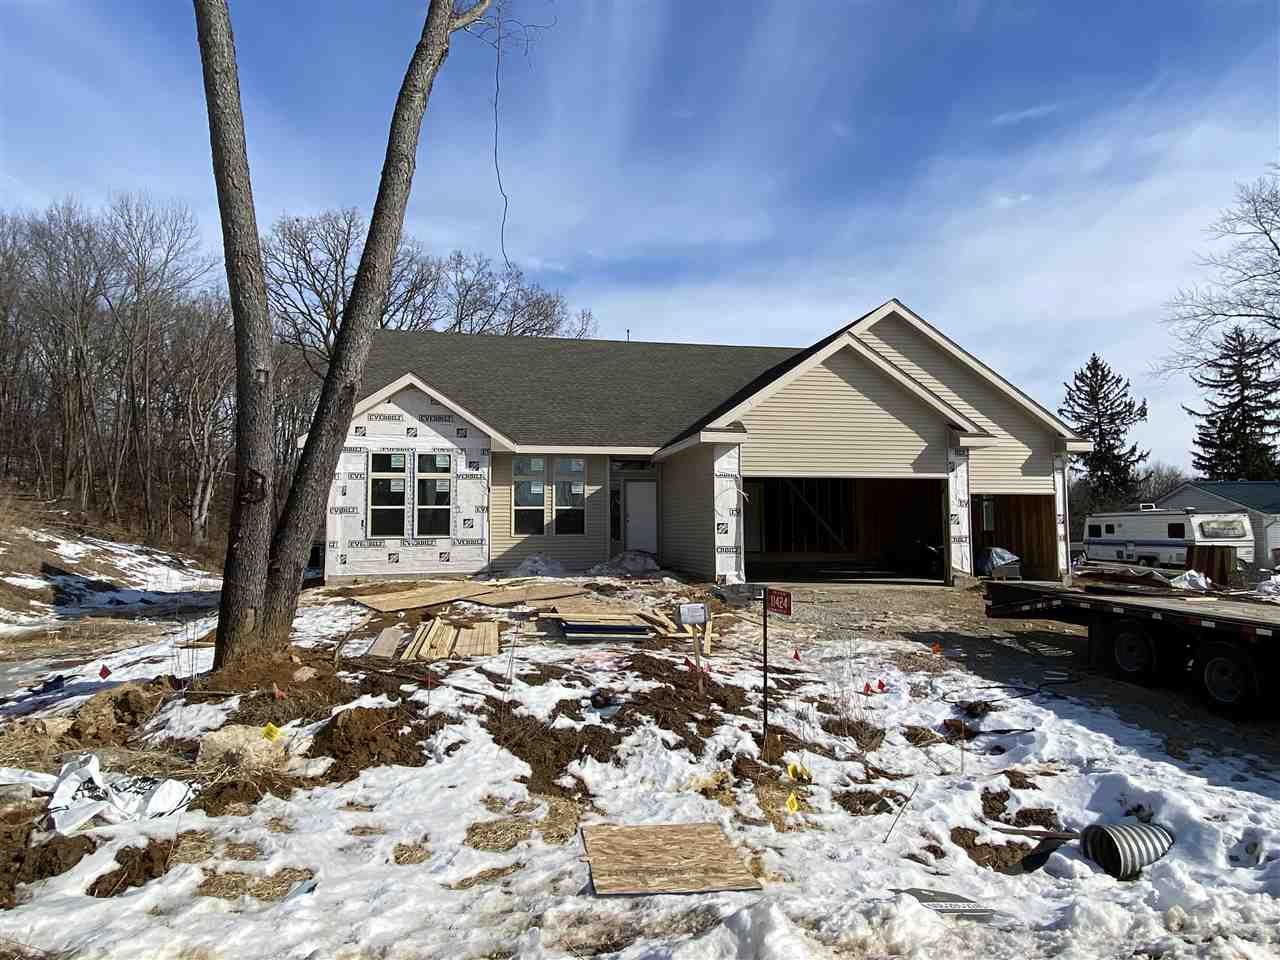 11424 N Lake Woods Dr, Edgerton, WI 53534 - MLS#: 1869998